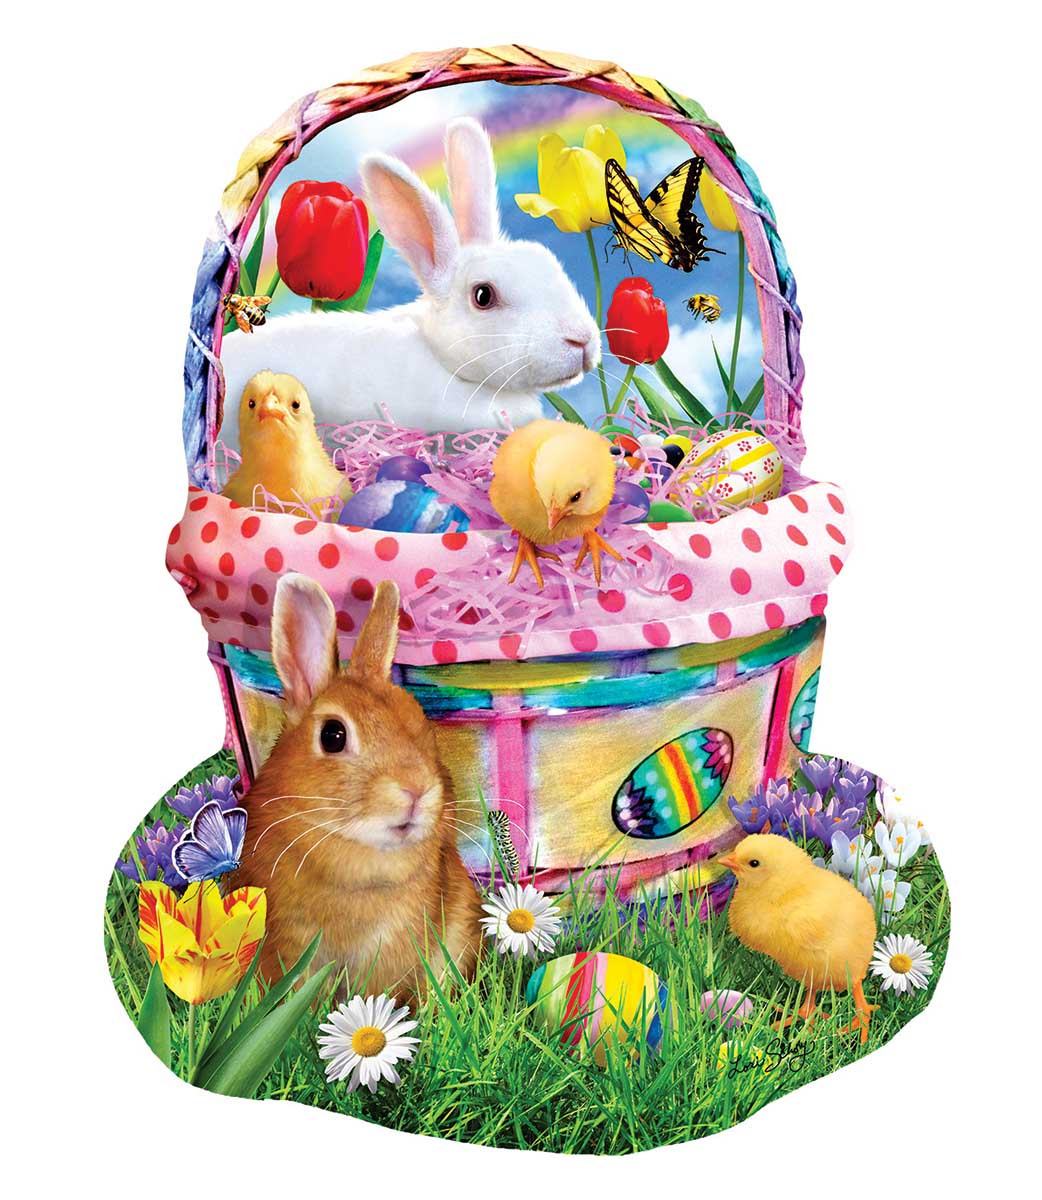 Bunny's Easter Basket Animals Shaped Puzzle